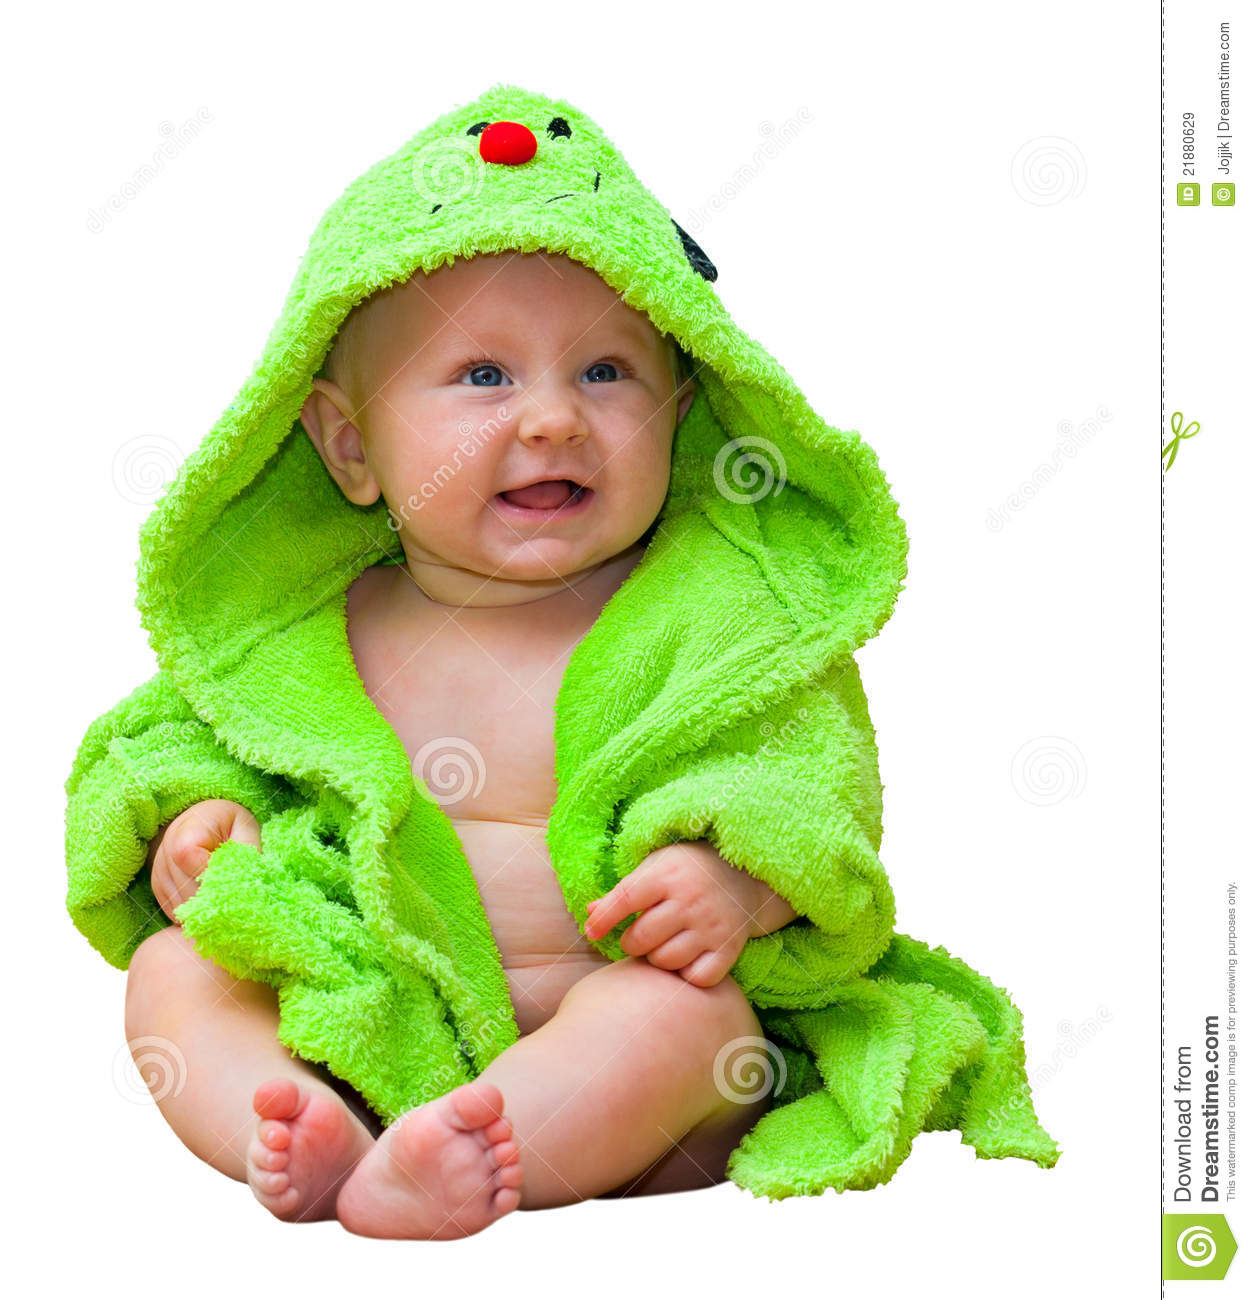 cf9e9bf9fb31 Bright Portrait Of A Cheerful Baby Stock Image - Image of cutout ...